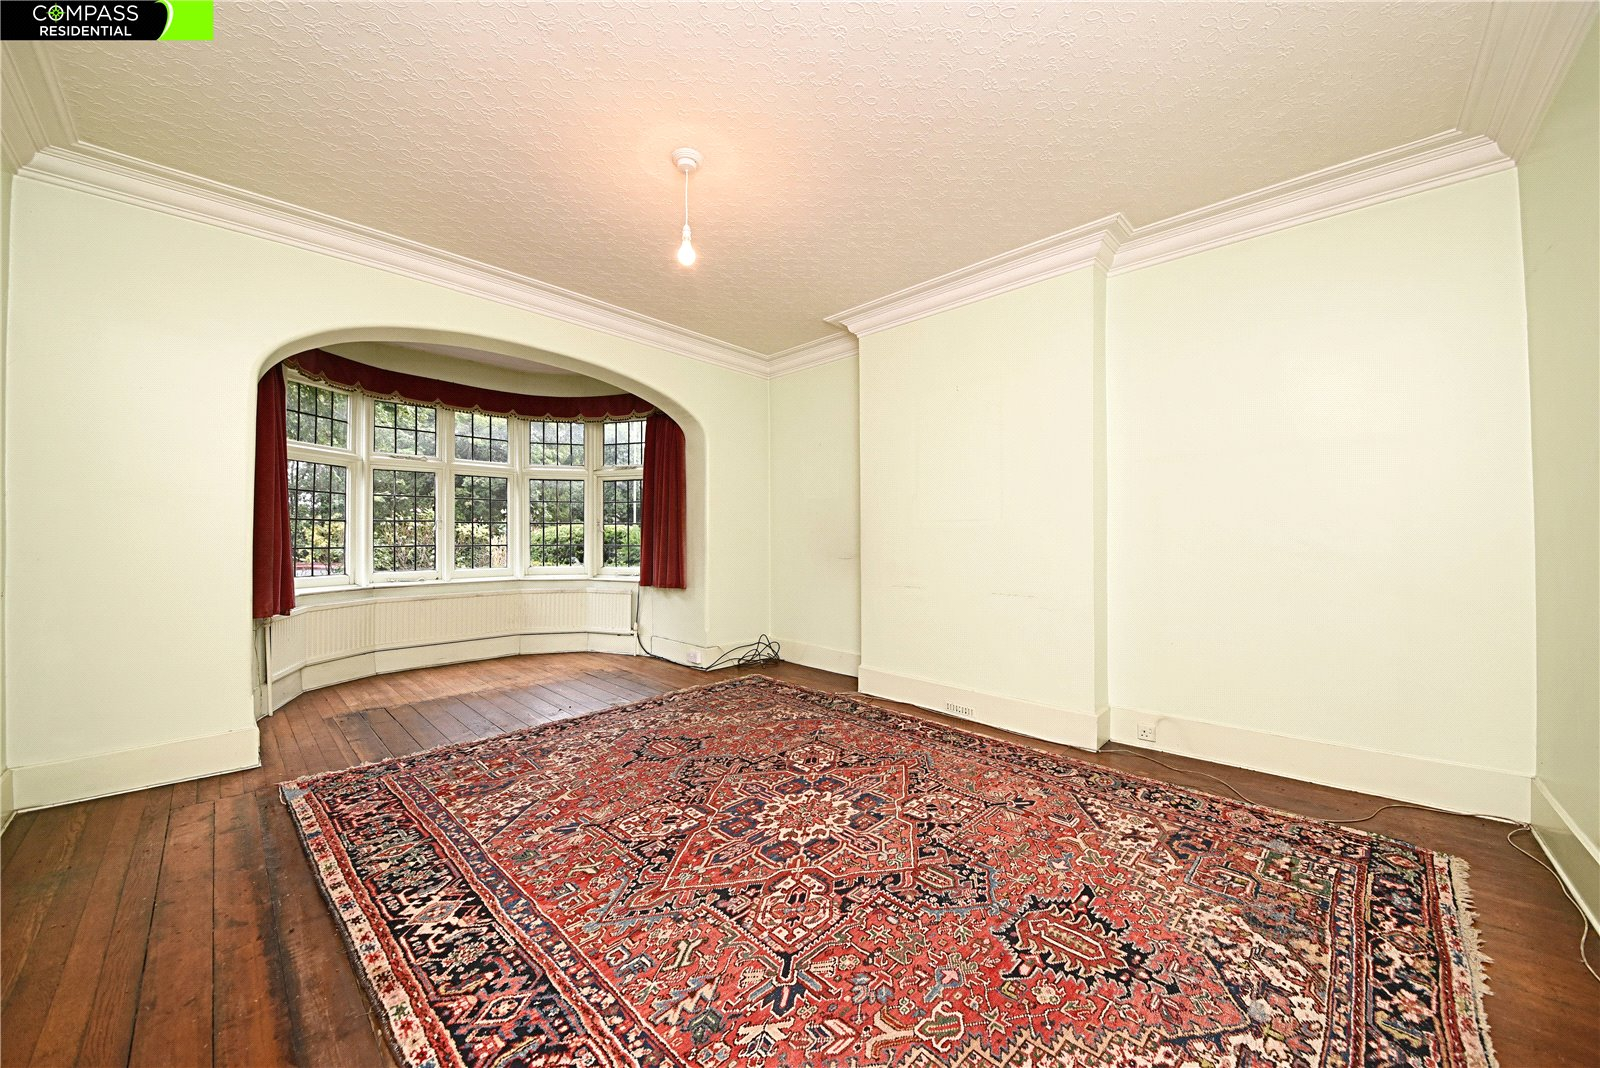 6 bed house for sale in Whetstone, N20 0NN  - Property Image 7